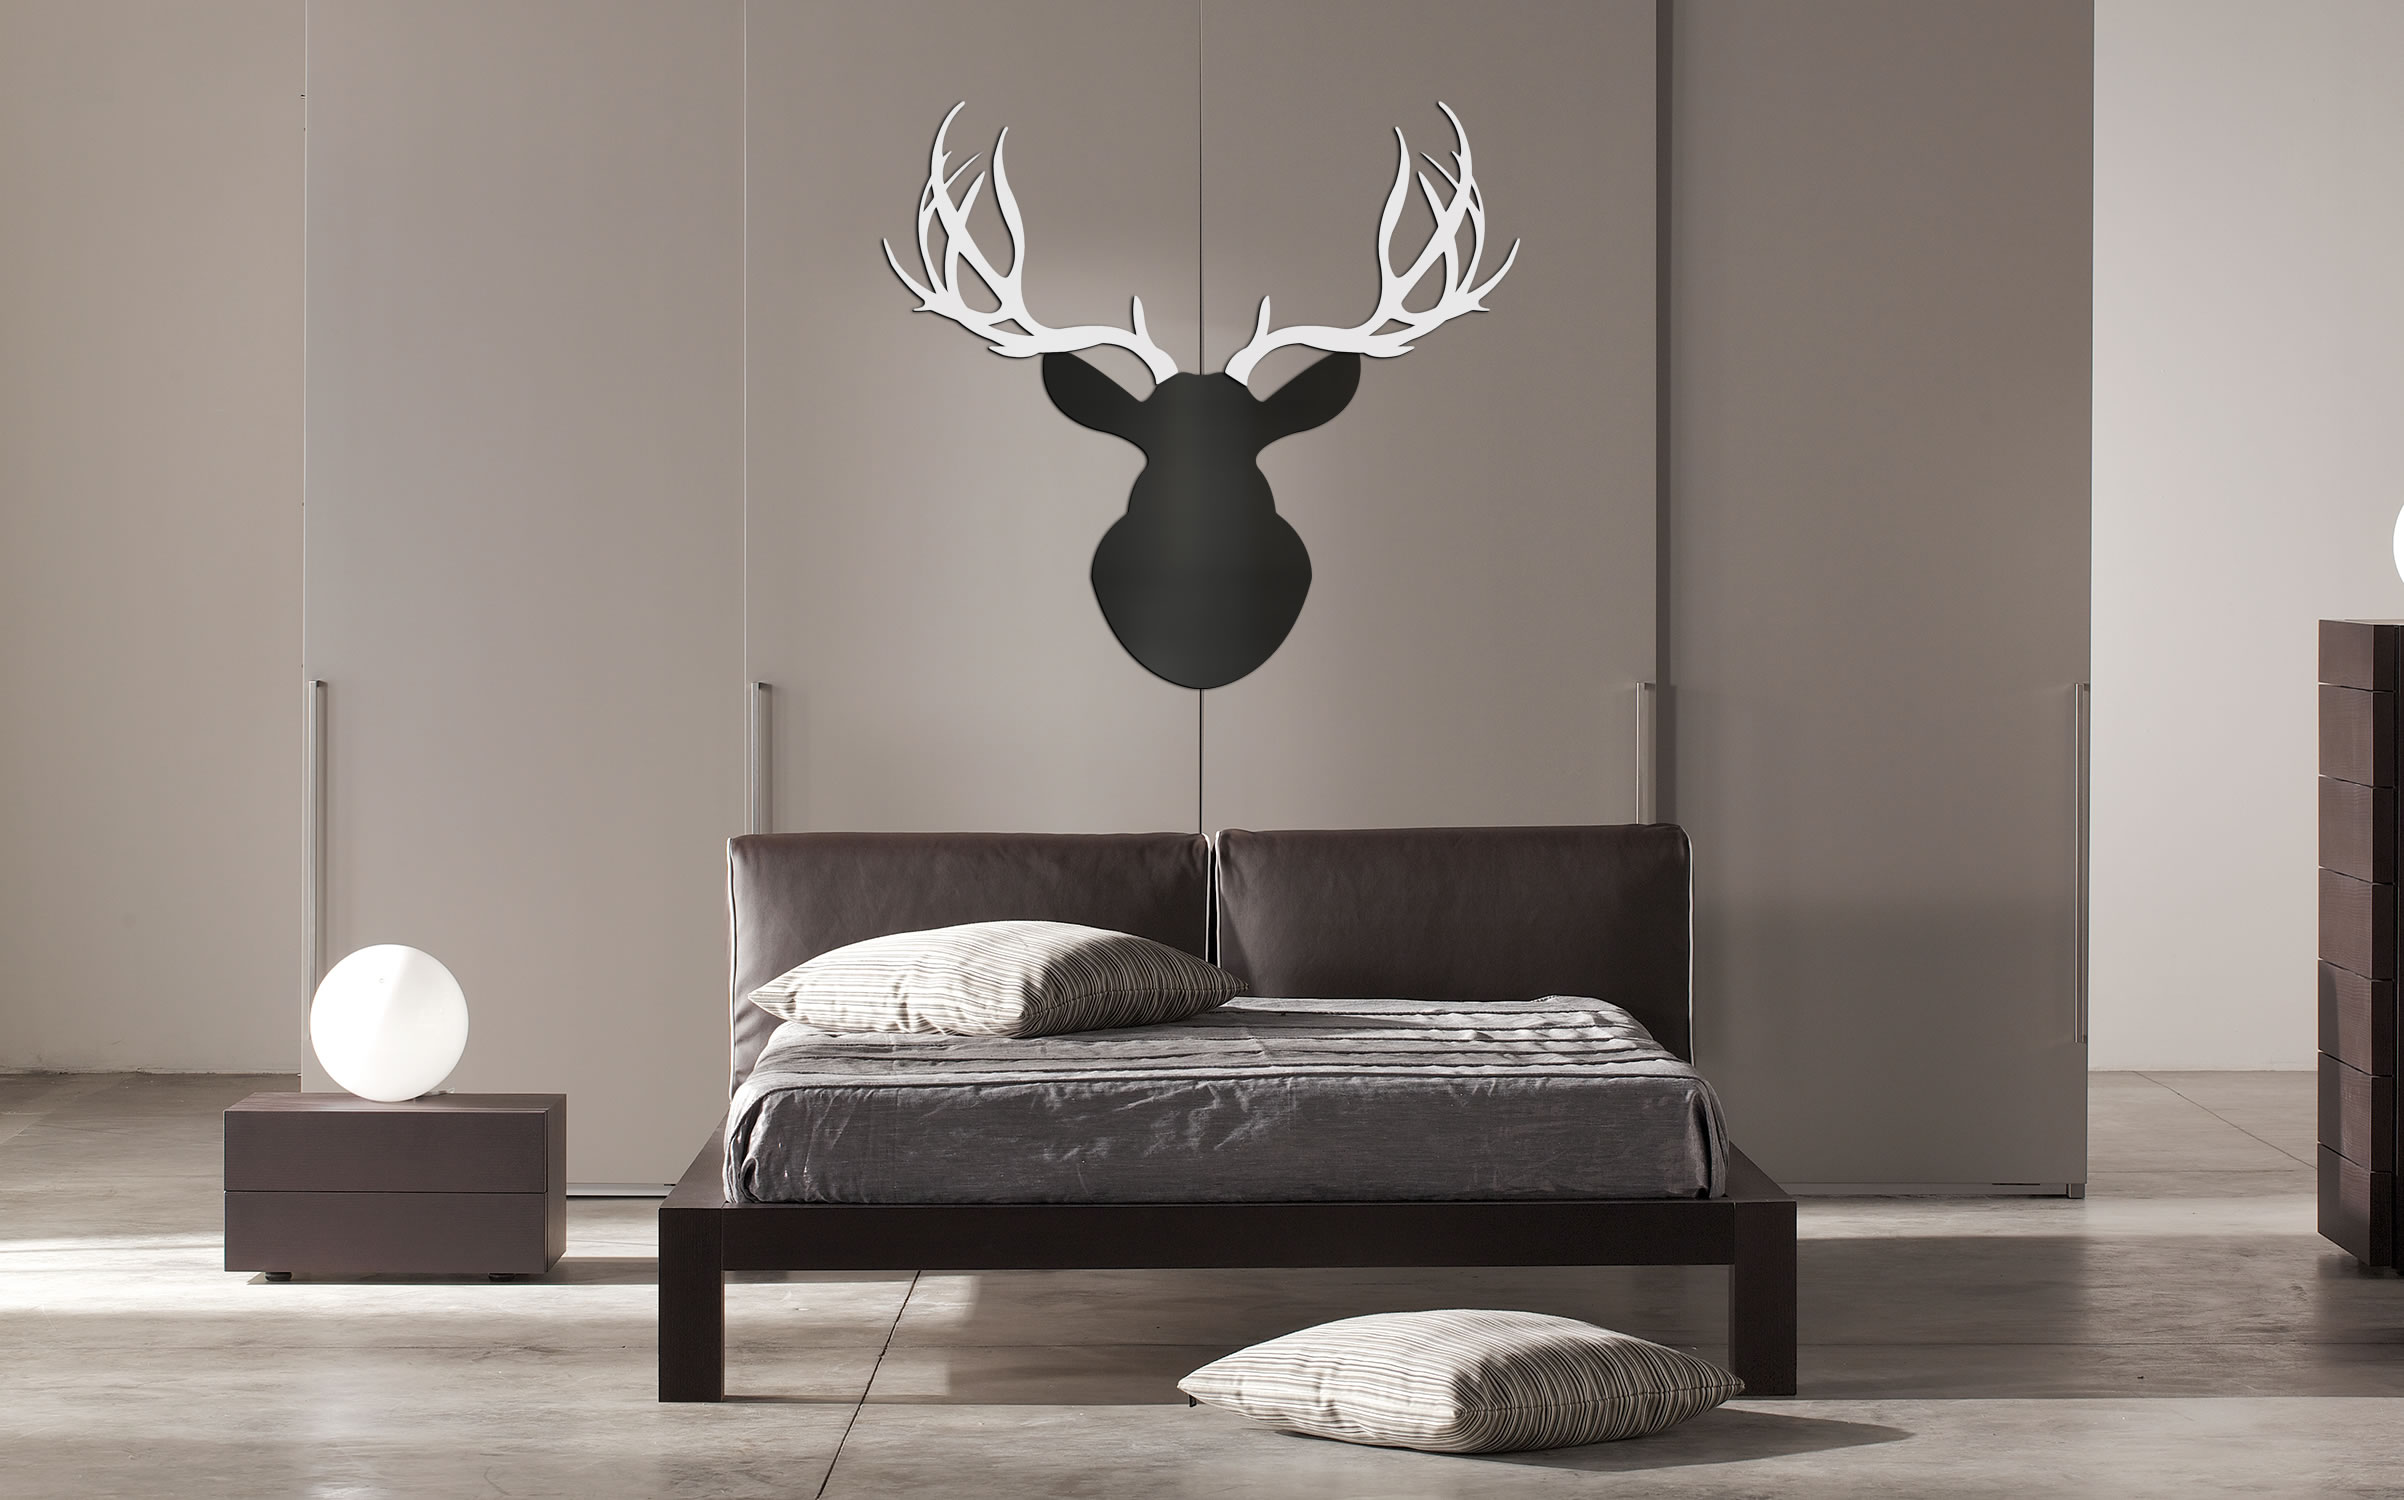 MODERN BUCK - 36x36 in. Black & White Deer Cut-Out - Lifestyle Image